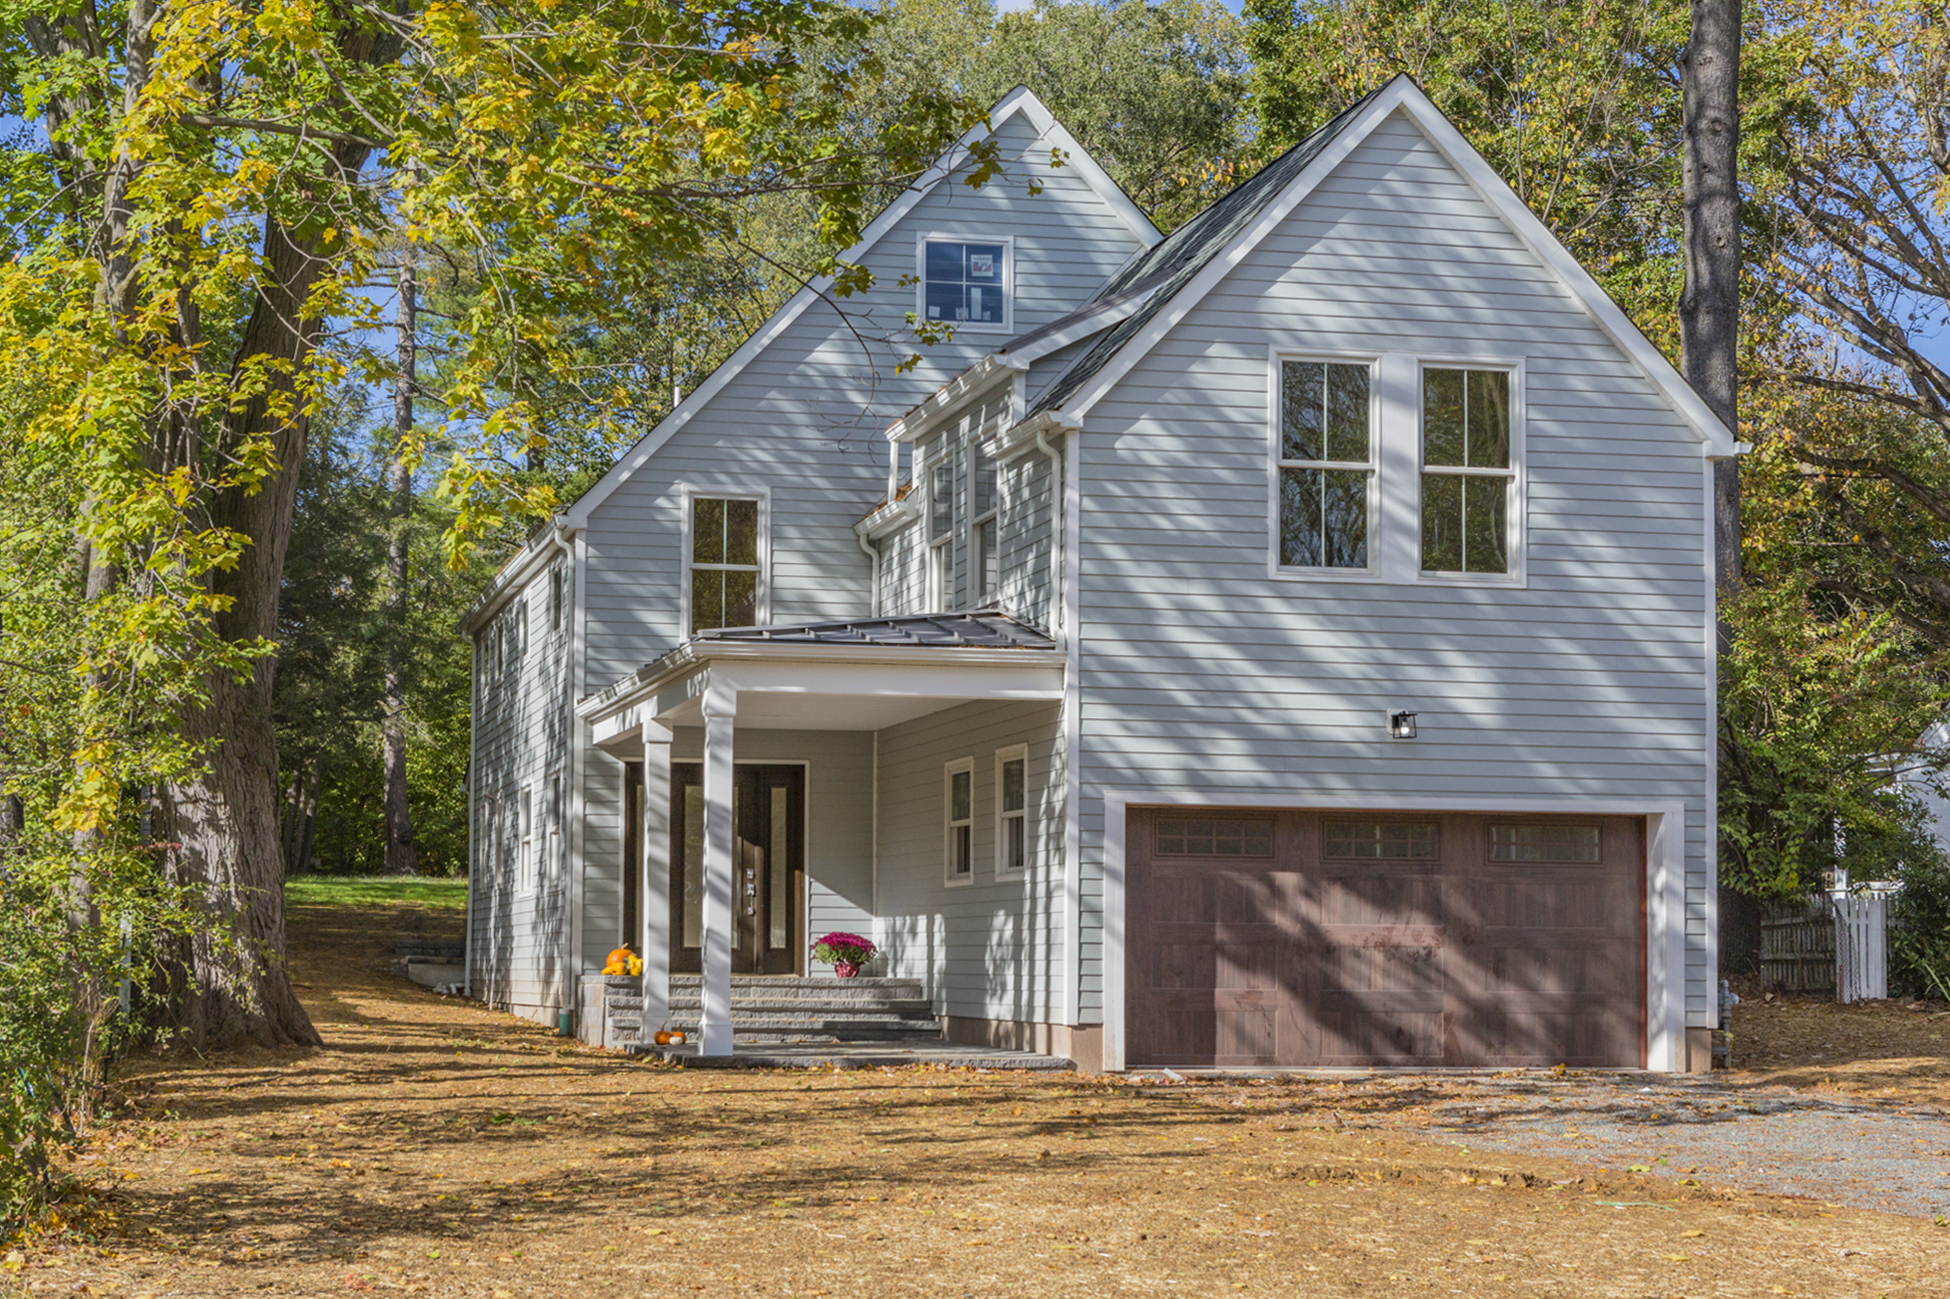 Single Family Home for Sale at Beautiful New Construction Close to Downtown 12 Rollingmead Street Princeton, New Jersey 08540 United States